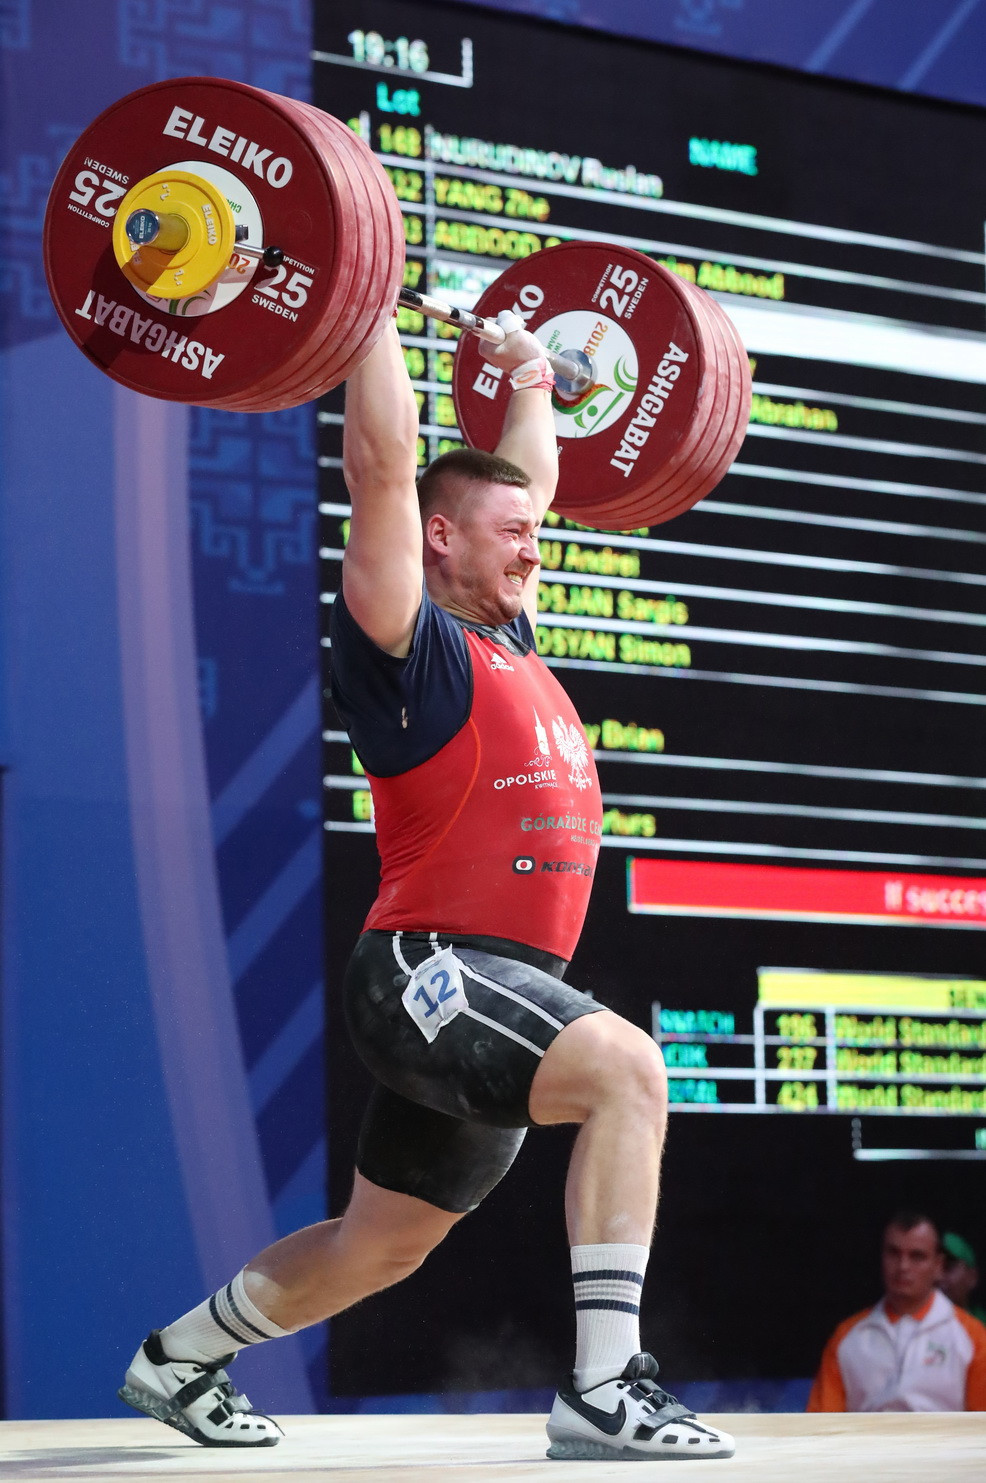 Rounding out the overall podium was Poland's Arkadiusz Michalski ©IWF